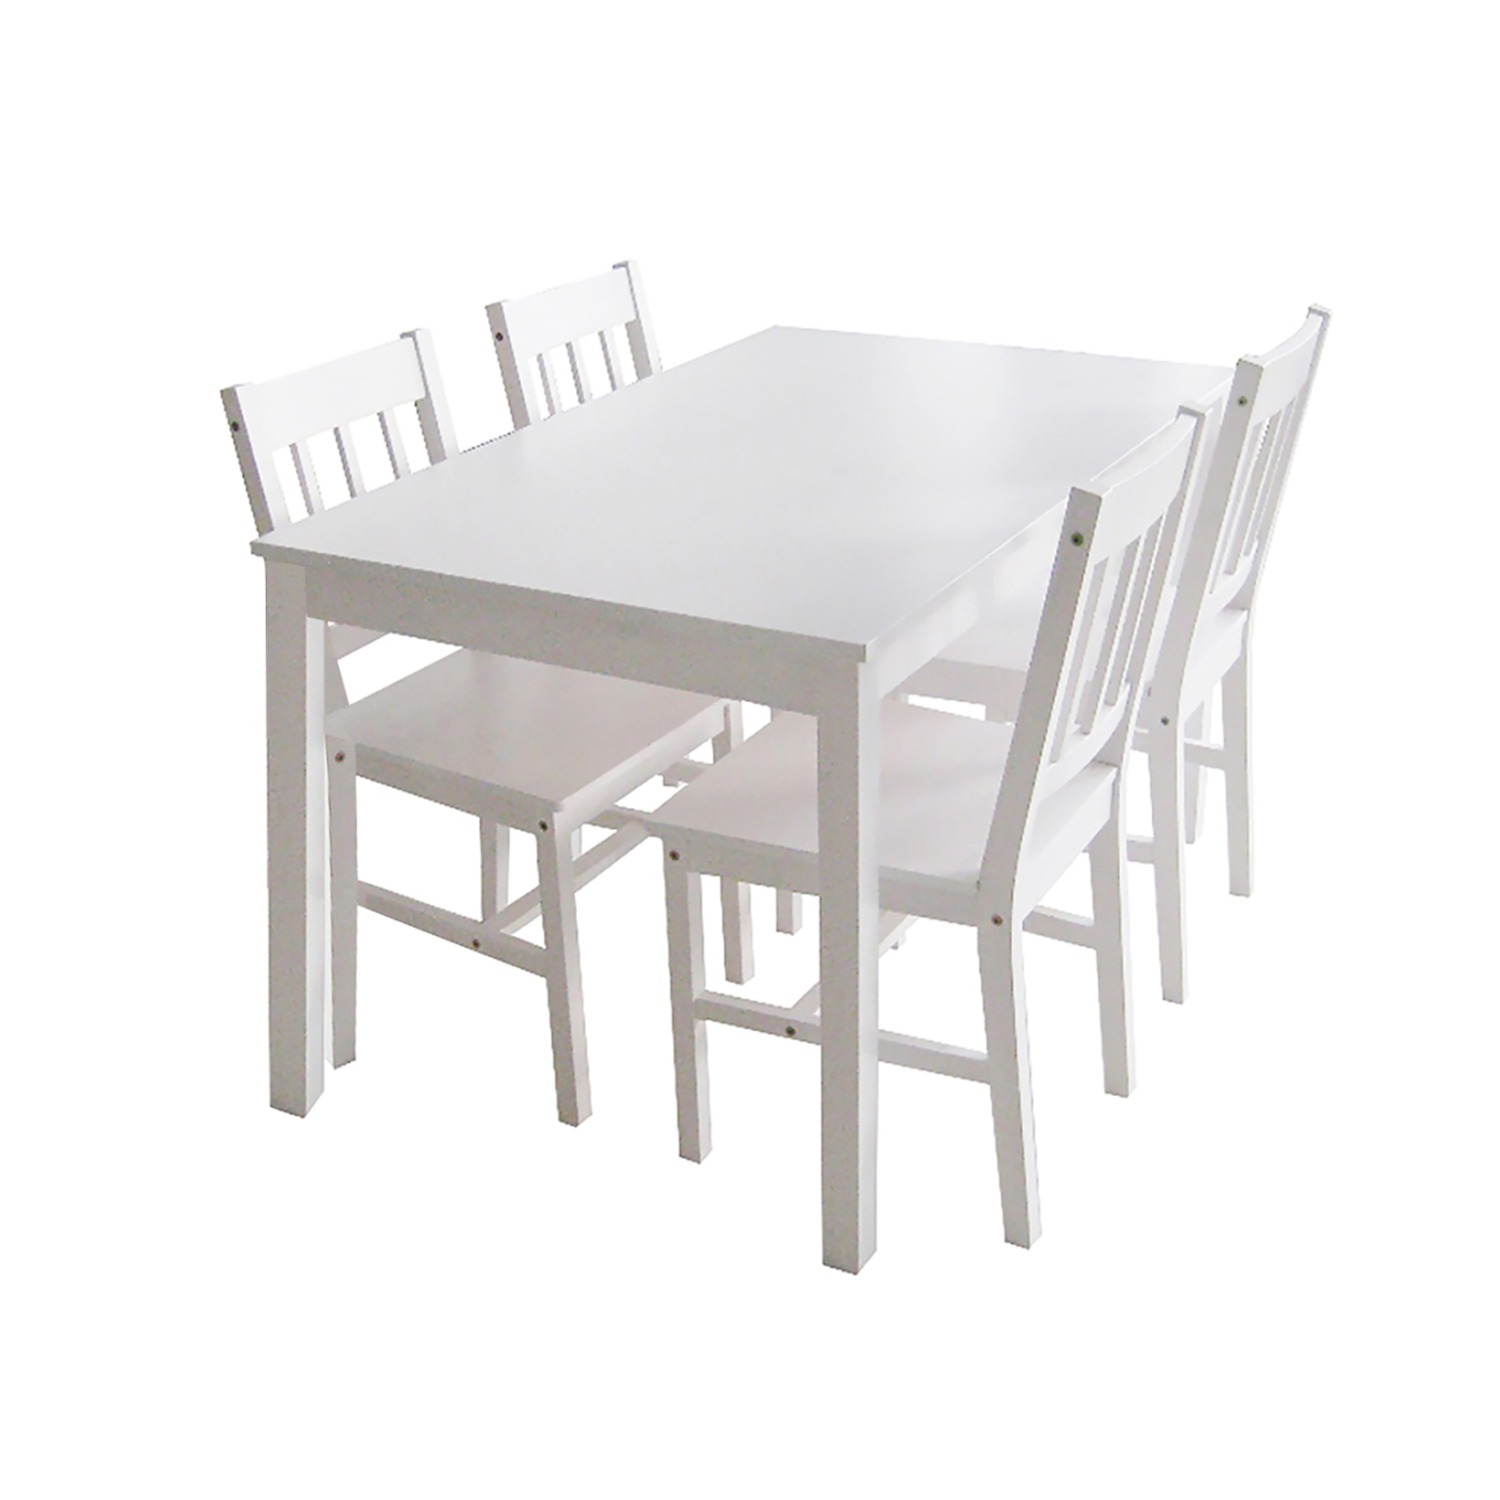 Dining Chairs Philippines Furniture Source Philippines Danetti Dining Set With 4